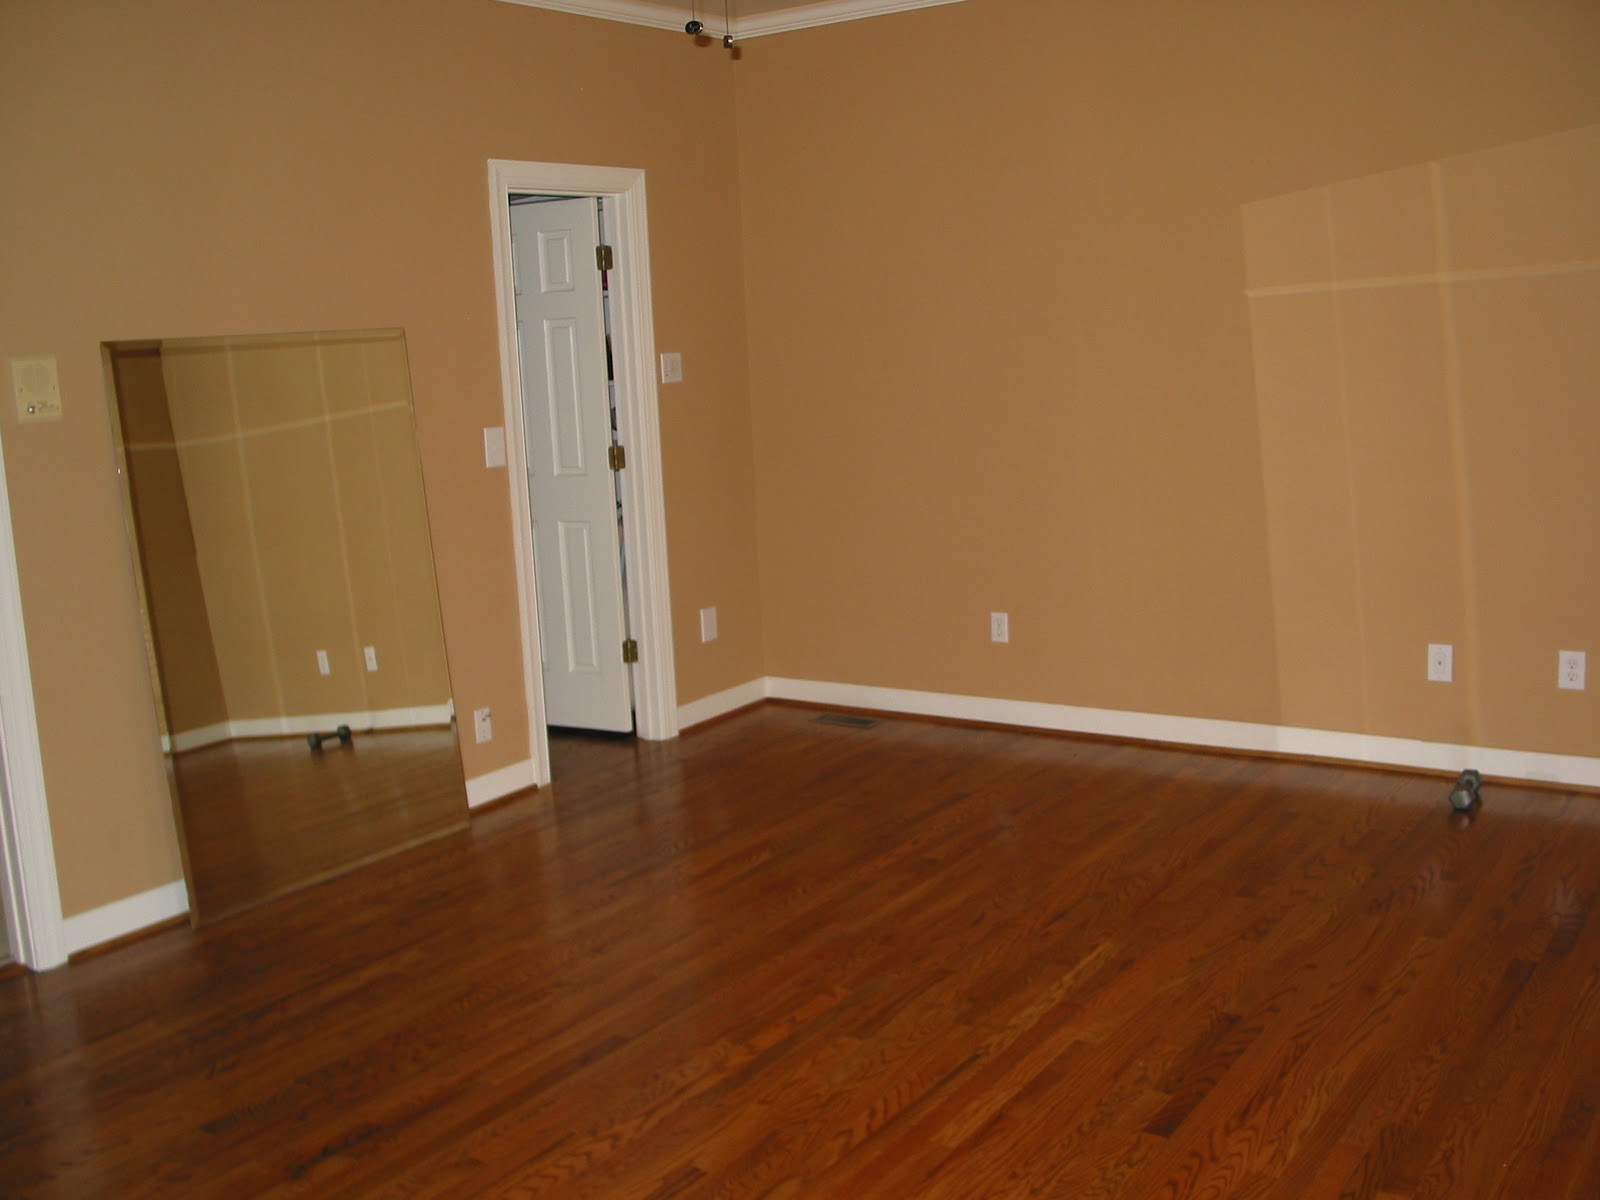 how to make living room open and kitchen paint ideas goodbye, house. hello, home! blog : home staging -- tips ...